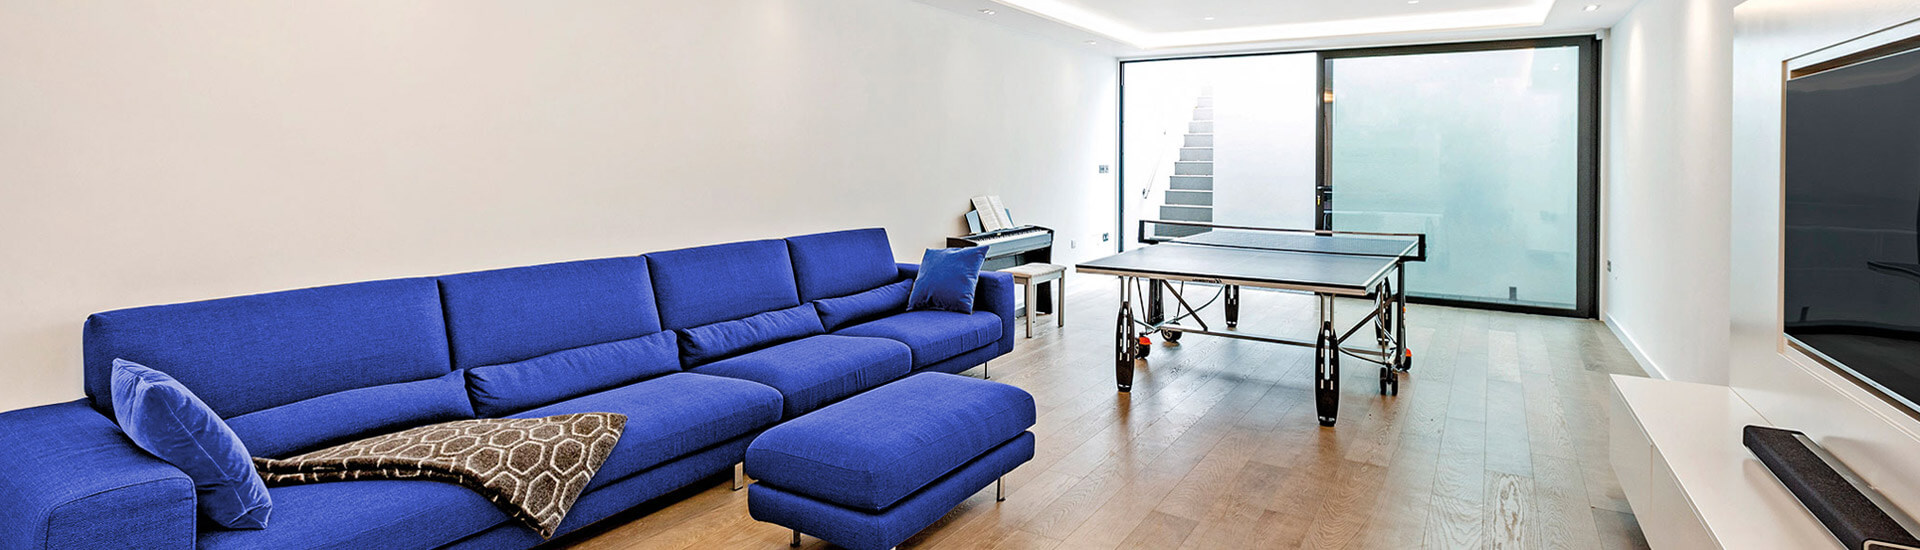 west-london-basement-entertainment-room